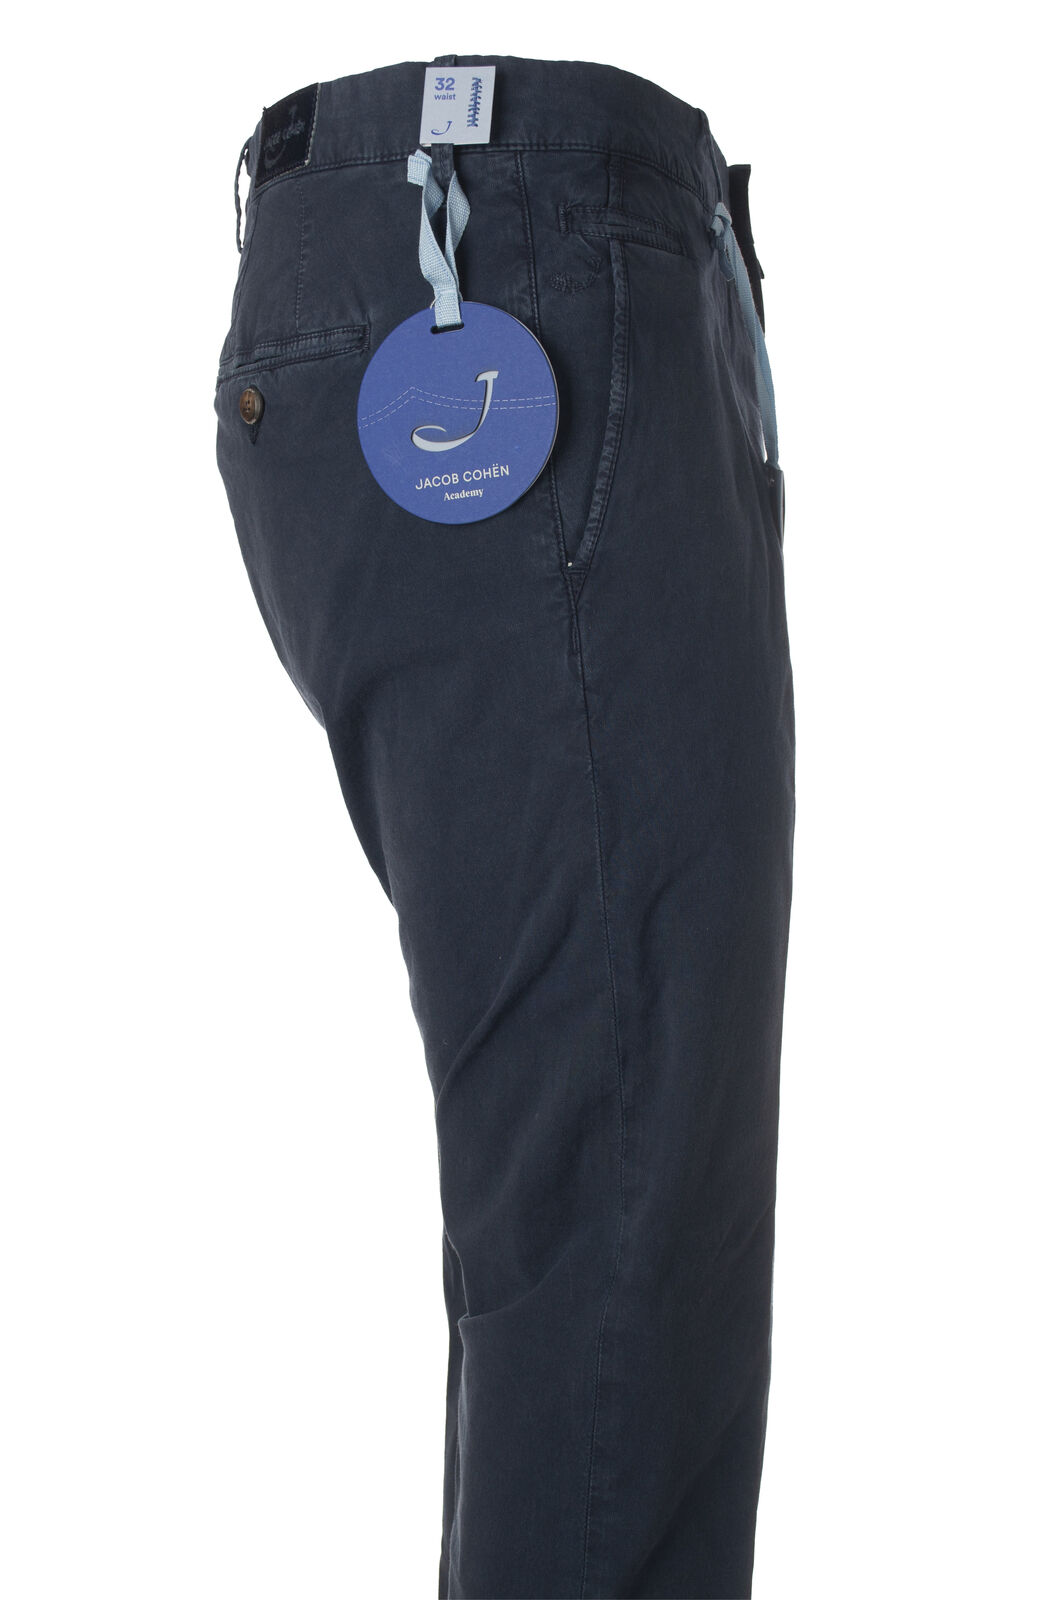 Jacob Cohen - Pants-Pants - Man - bluee - 5980012C190737